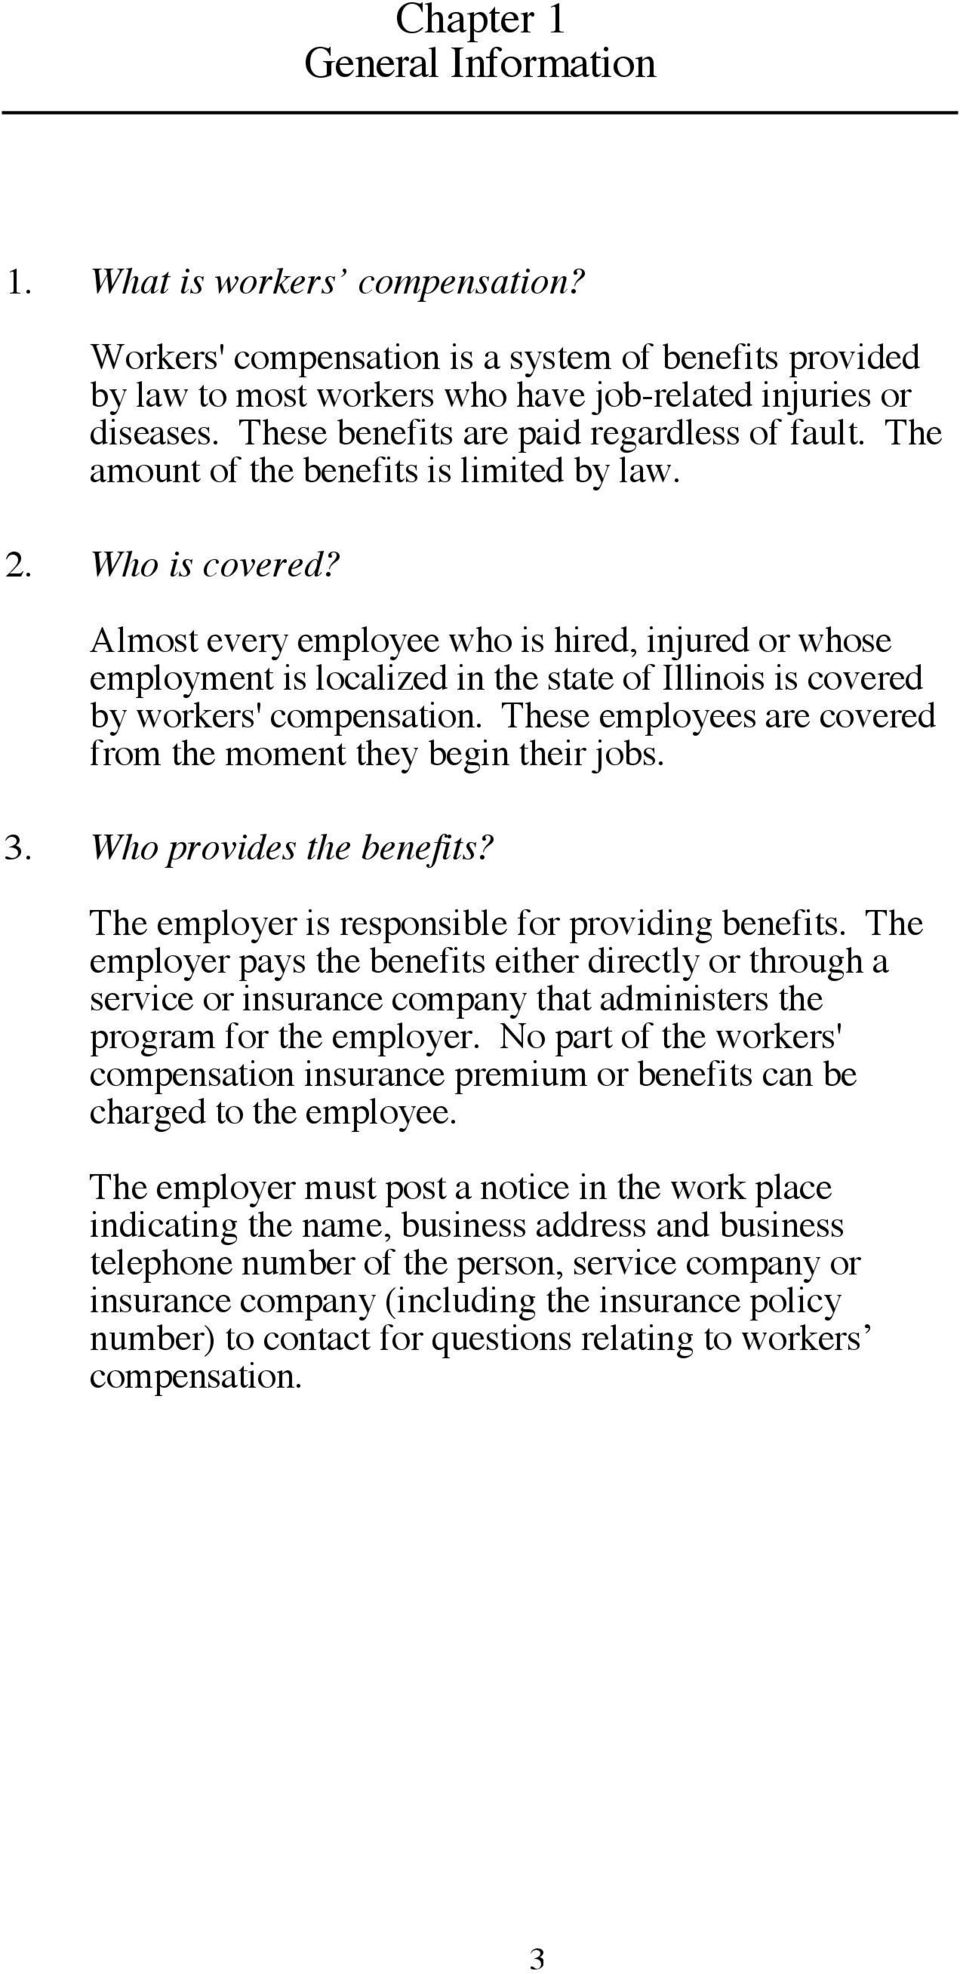 Almost every employee who is hired, injured or whose employment is localized in the state of Illinois is covered by workers' compensation.